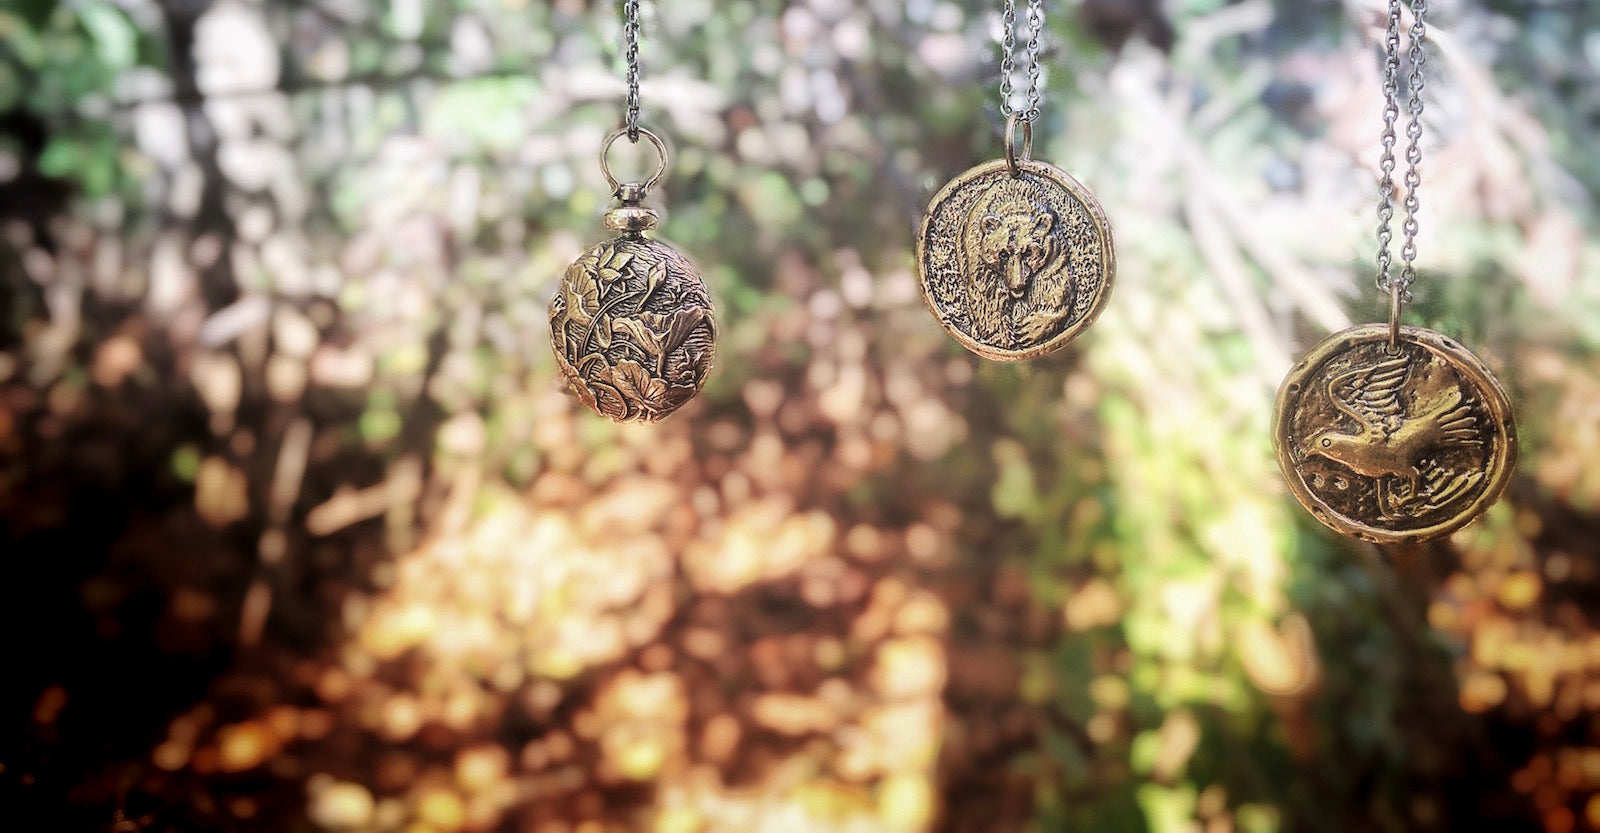 INSPIRED JEWELRY FOR YOUR SOUL